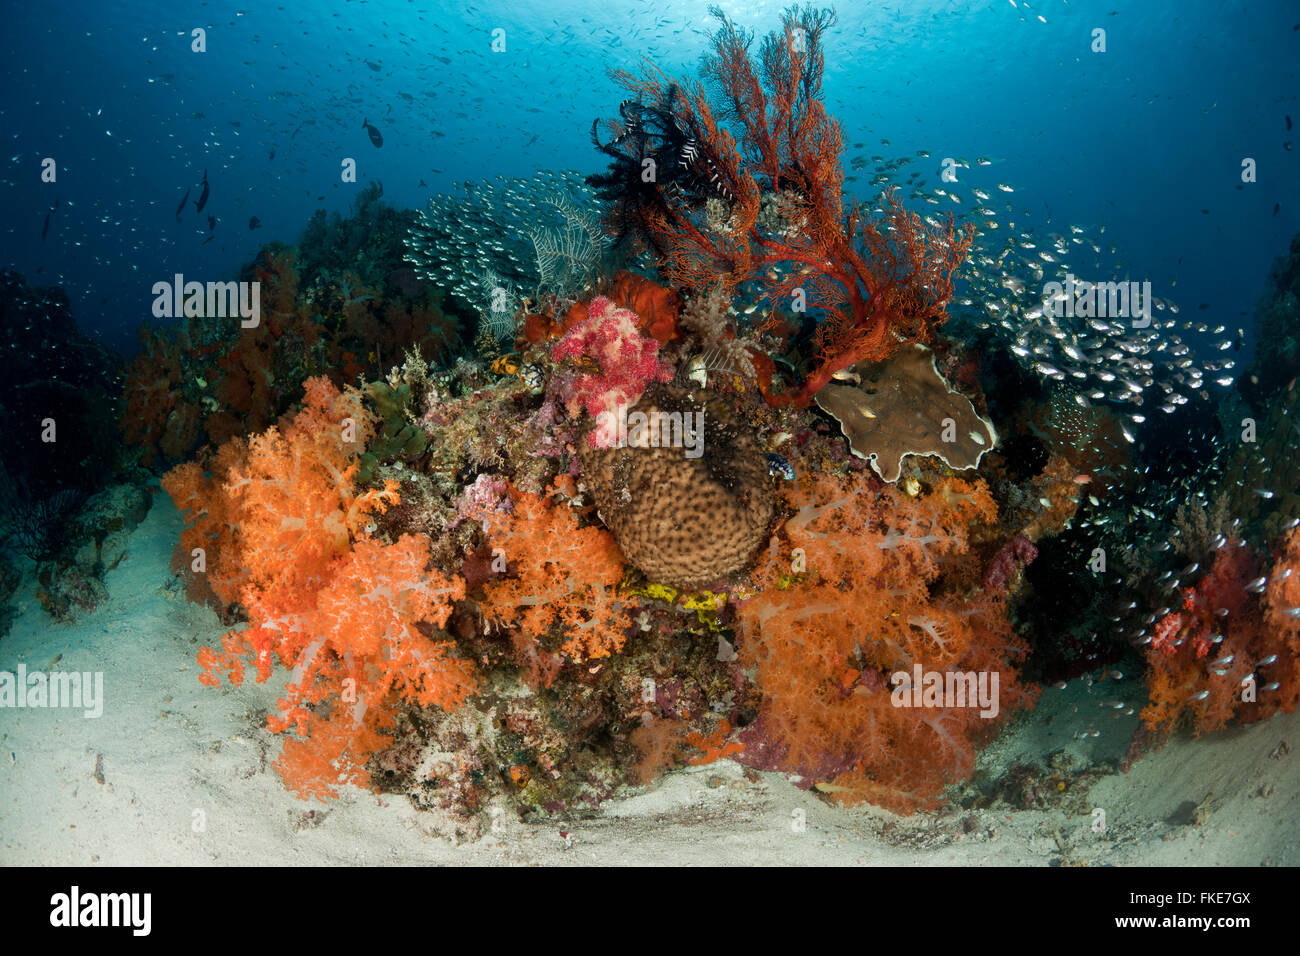 A school of glassy sweepers in gorgonian fans and soft corals in the reef. Stock Photo